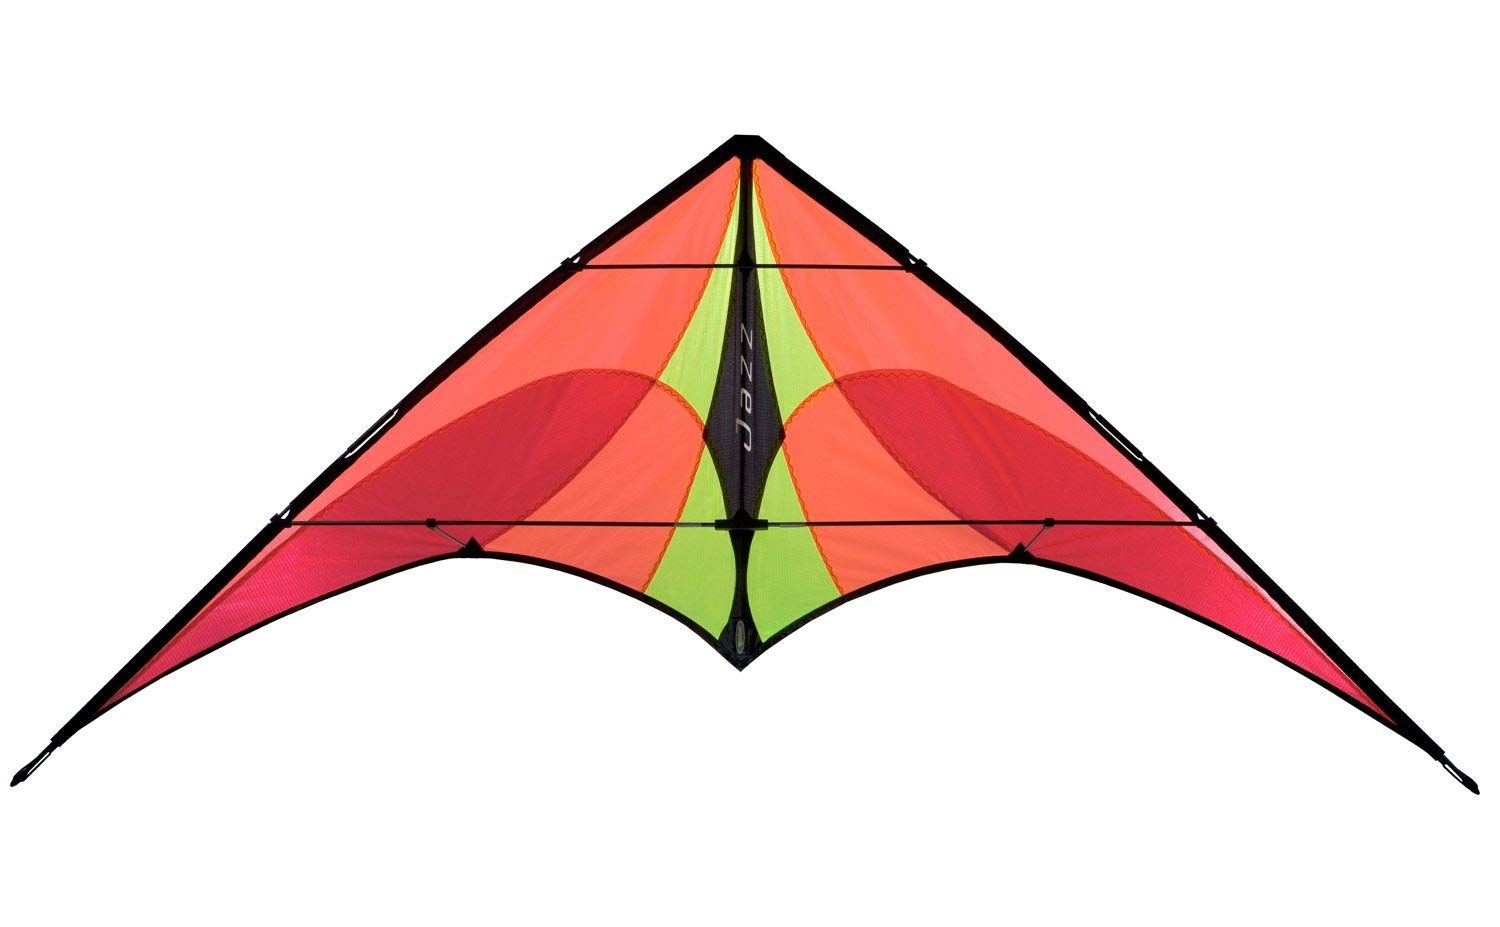 Prism Jazz Dual Line Delta Framed Stunt Kite with 40' Tail Bundle (3 Items) + Prism 40ft Nylon Ripstop Streamer Tail + WindBone Kiteboarding Lifestyle Stickers + Key Fob (Fire)